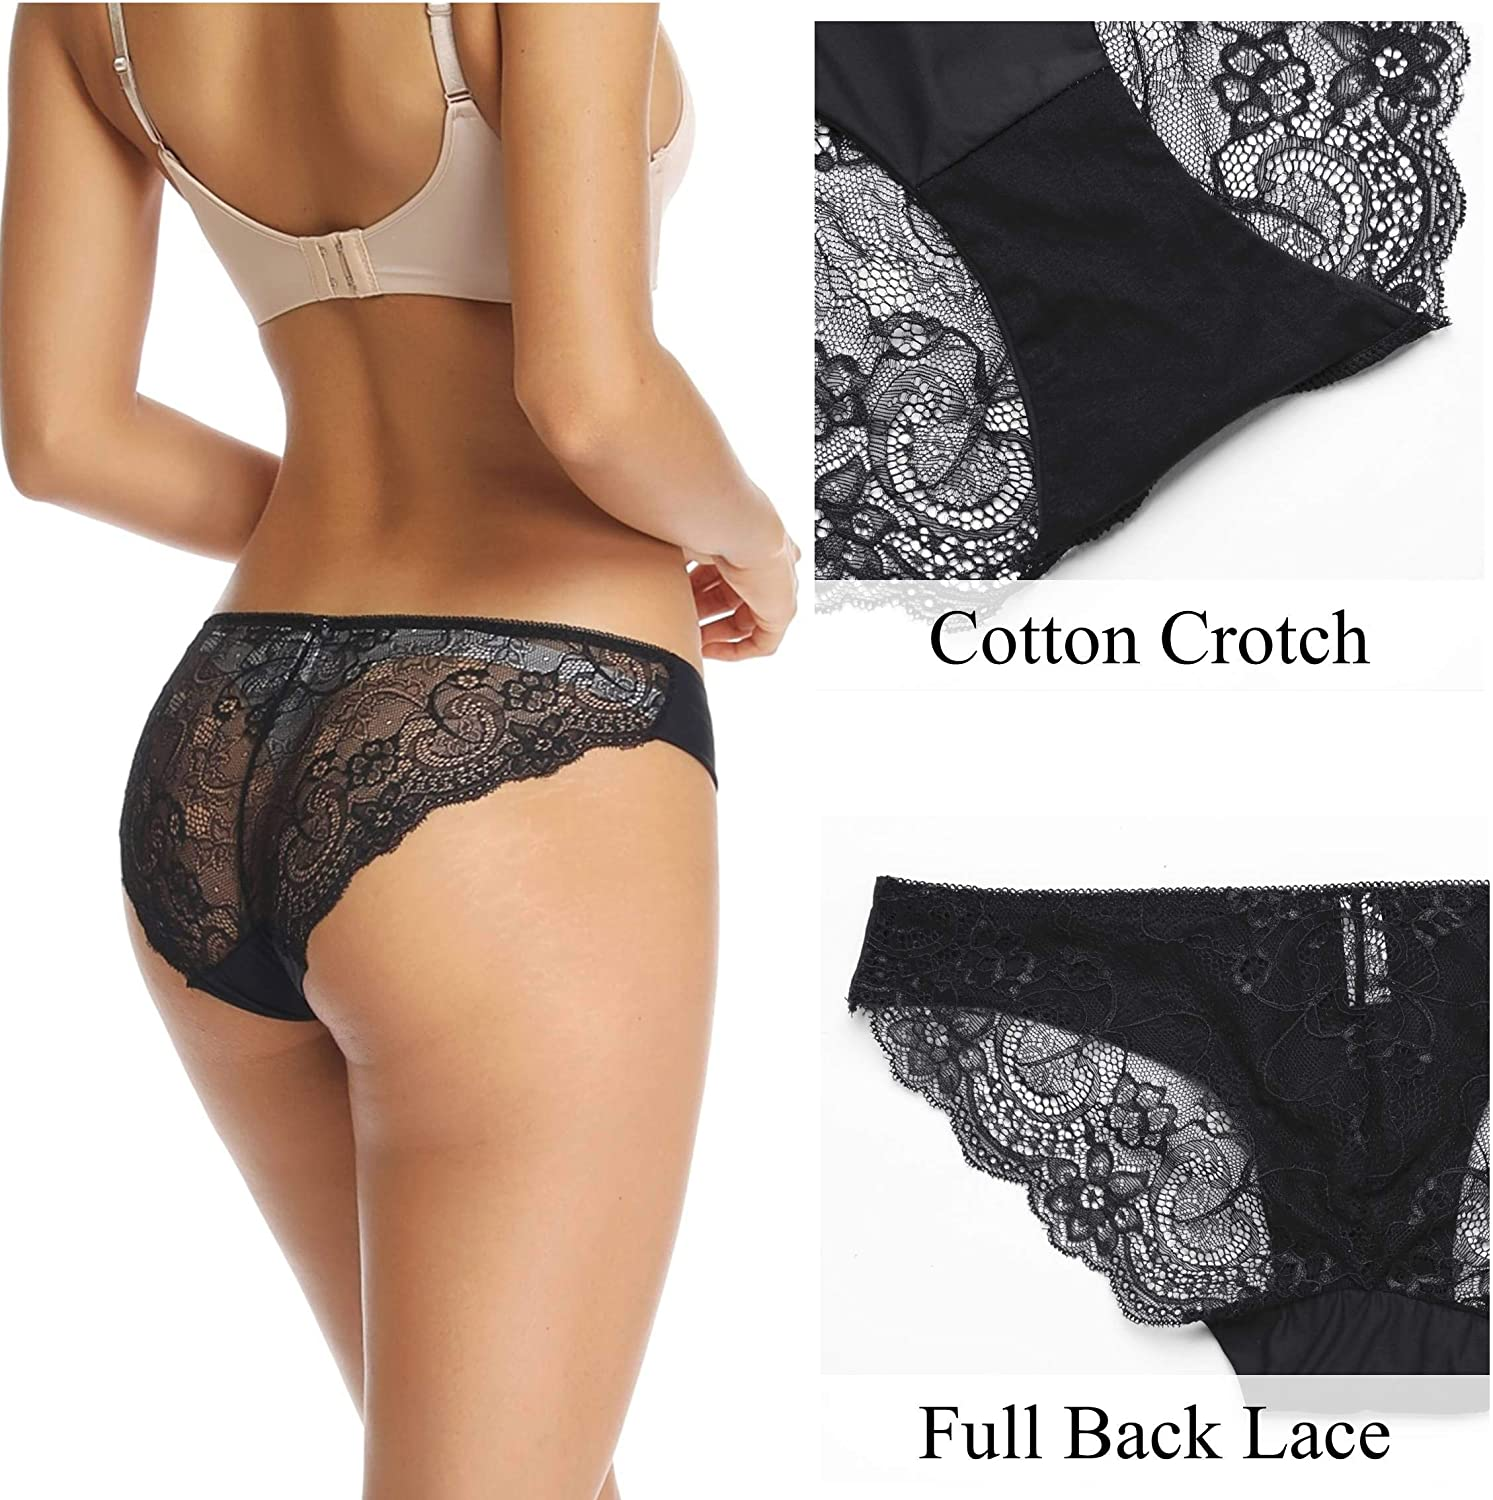 Lace Bikini Briefs Invisible No Show Underwear Low Rise Seamless Comfortable Breathable Knickers Hipsters WOWENY 3 Packs Women Lace High Leg Panties